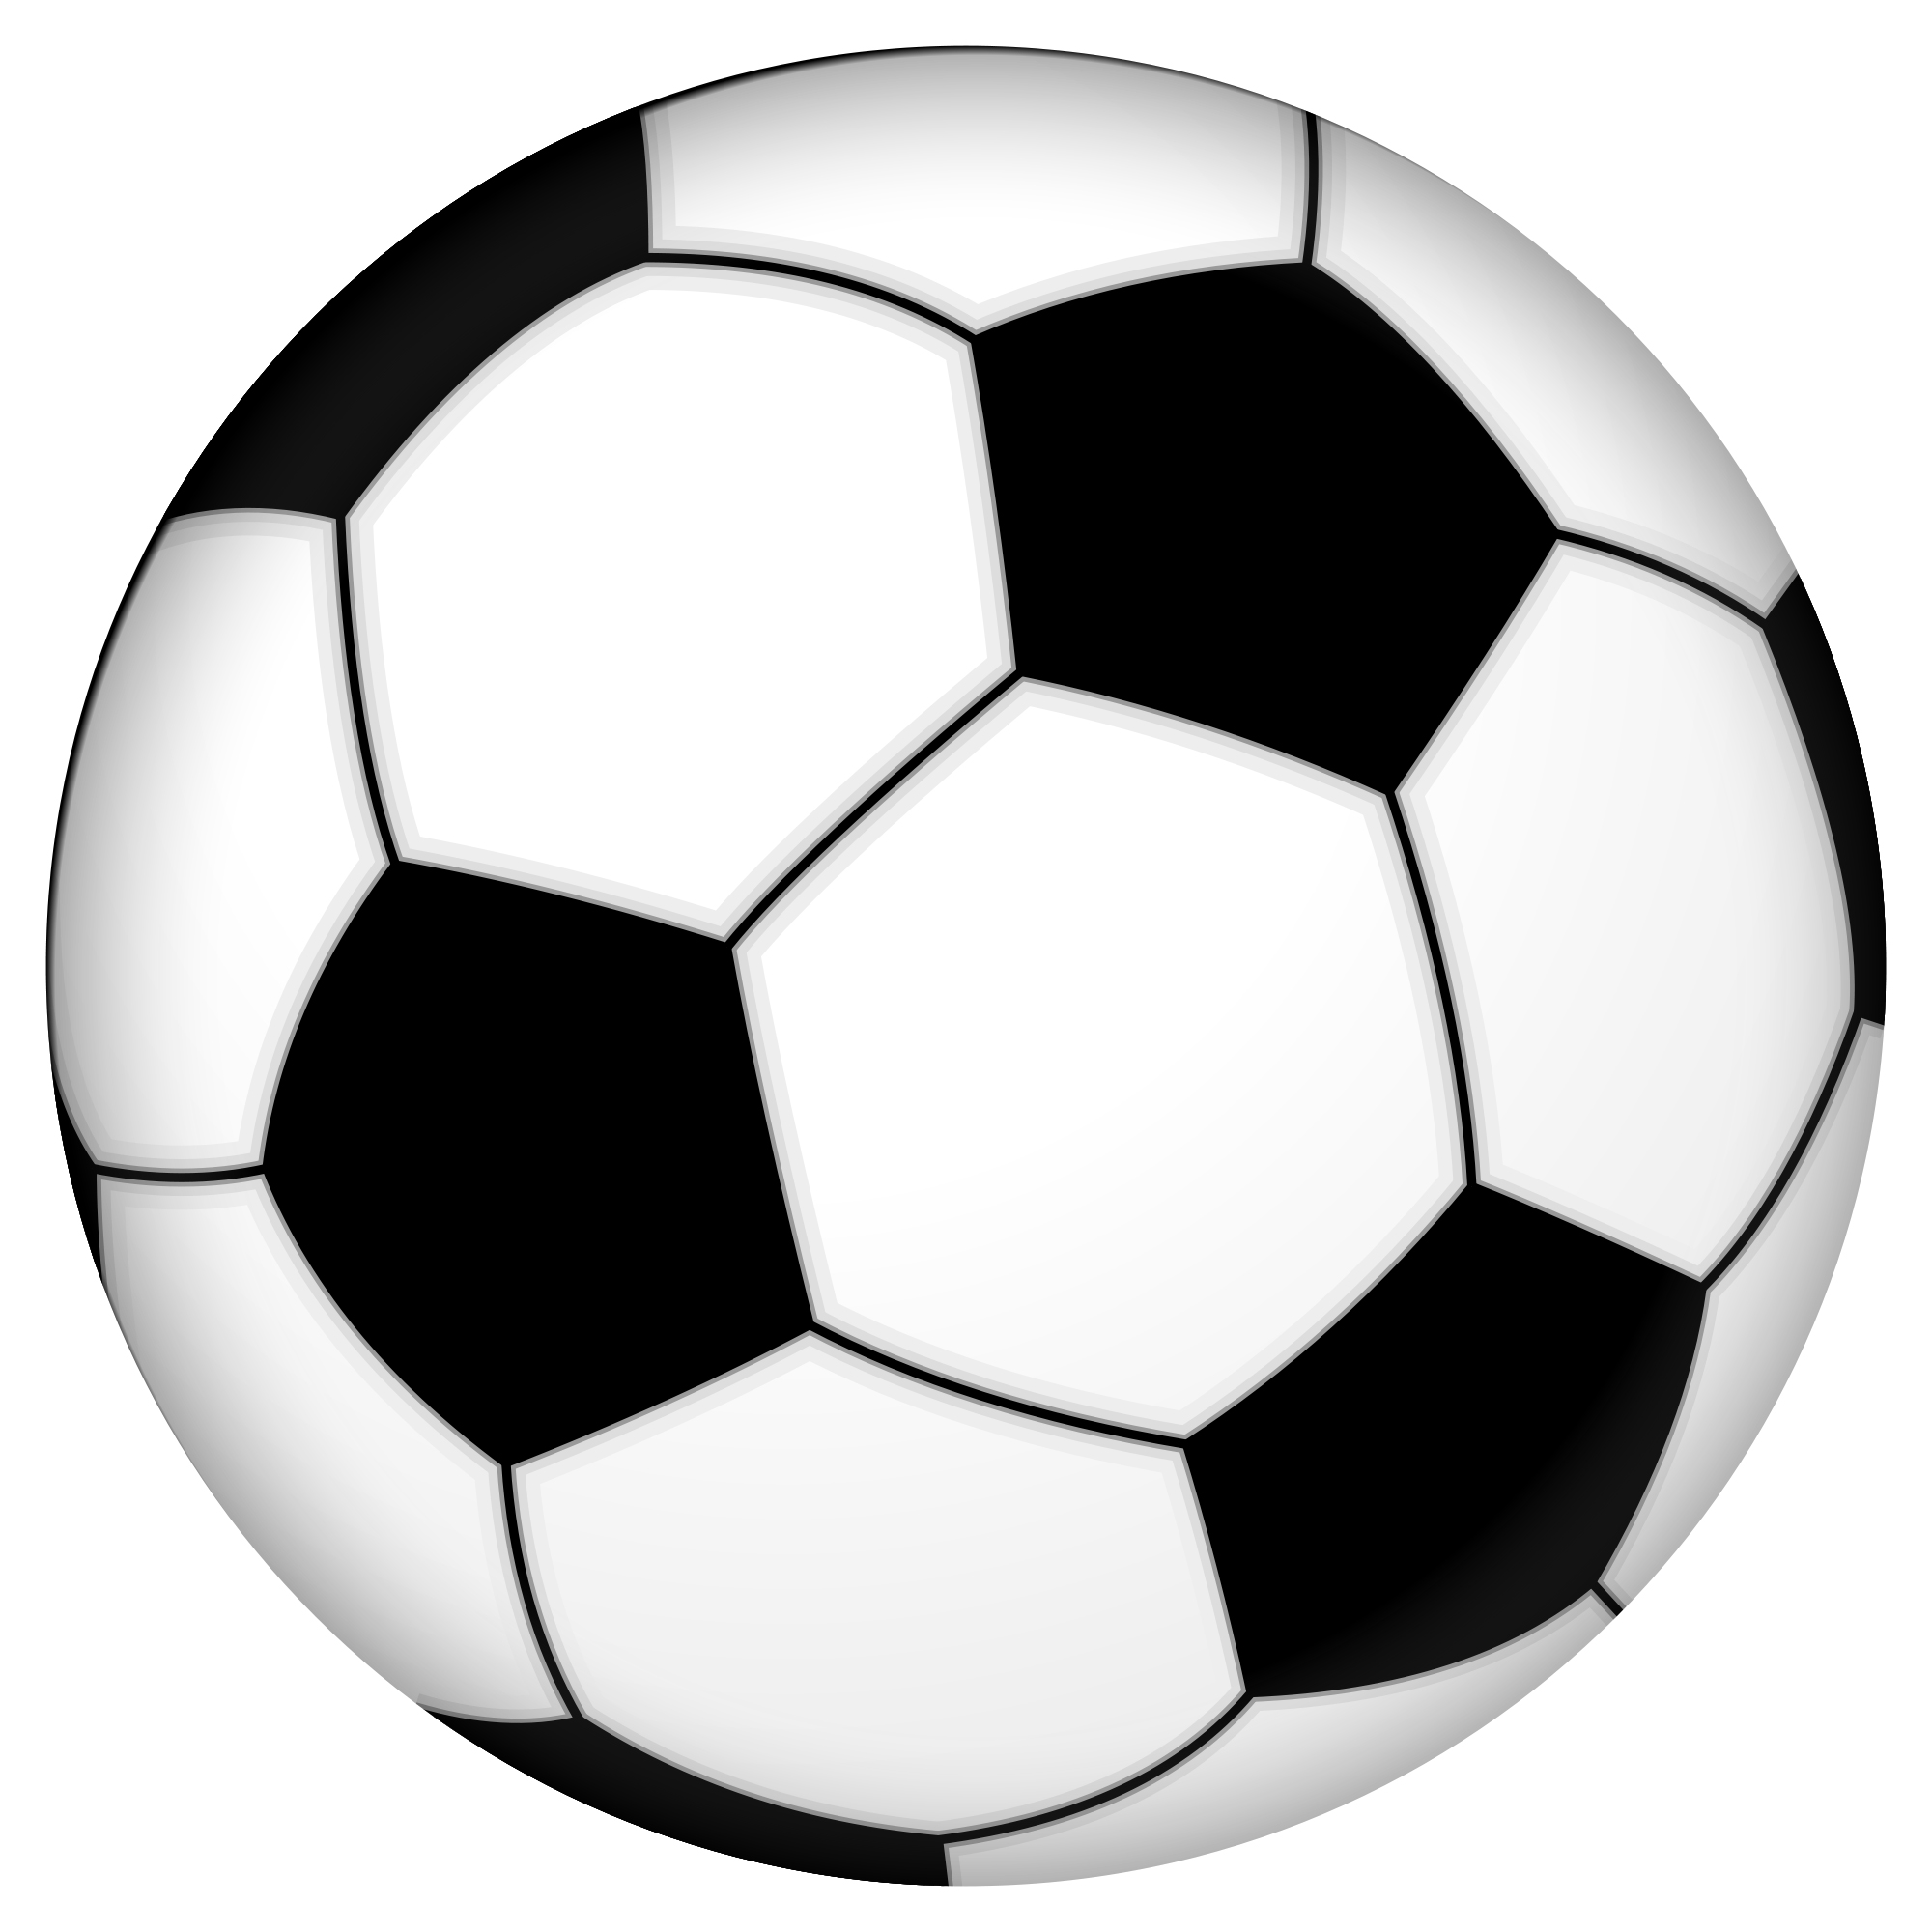 Soccer Clipart Free | Free download best Soccer Clipart Free on ... vector transparent